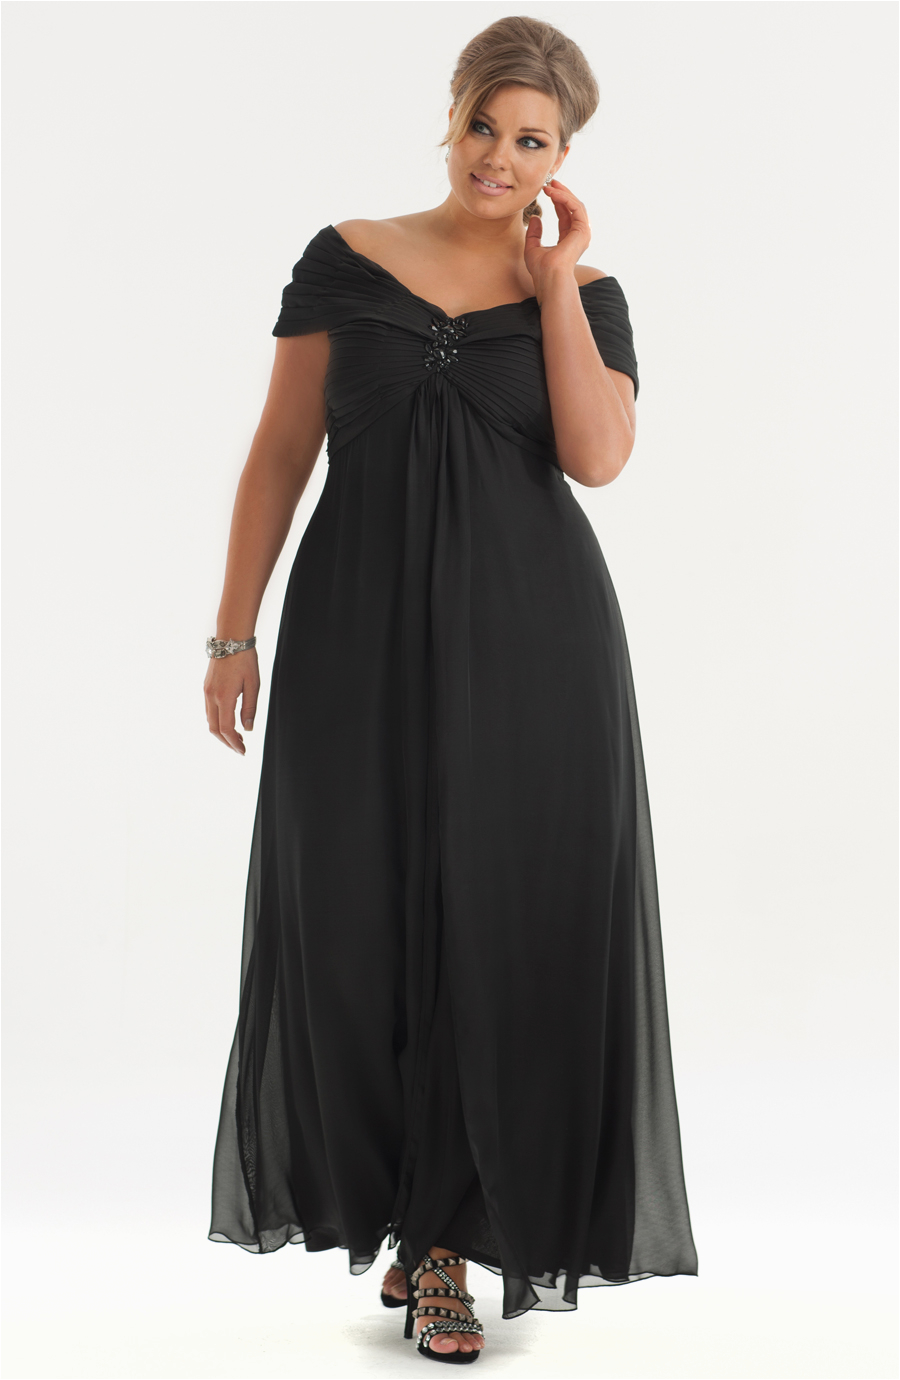 Classy Birthday Dresses 33 Plus Size Dresses for 2015 – BirthdayBuzz